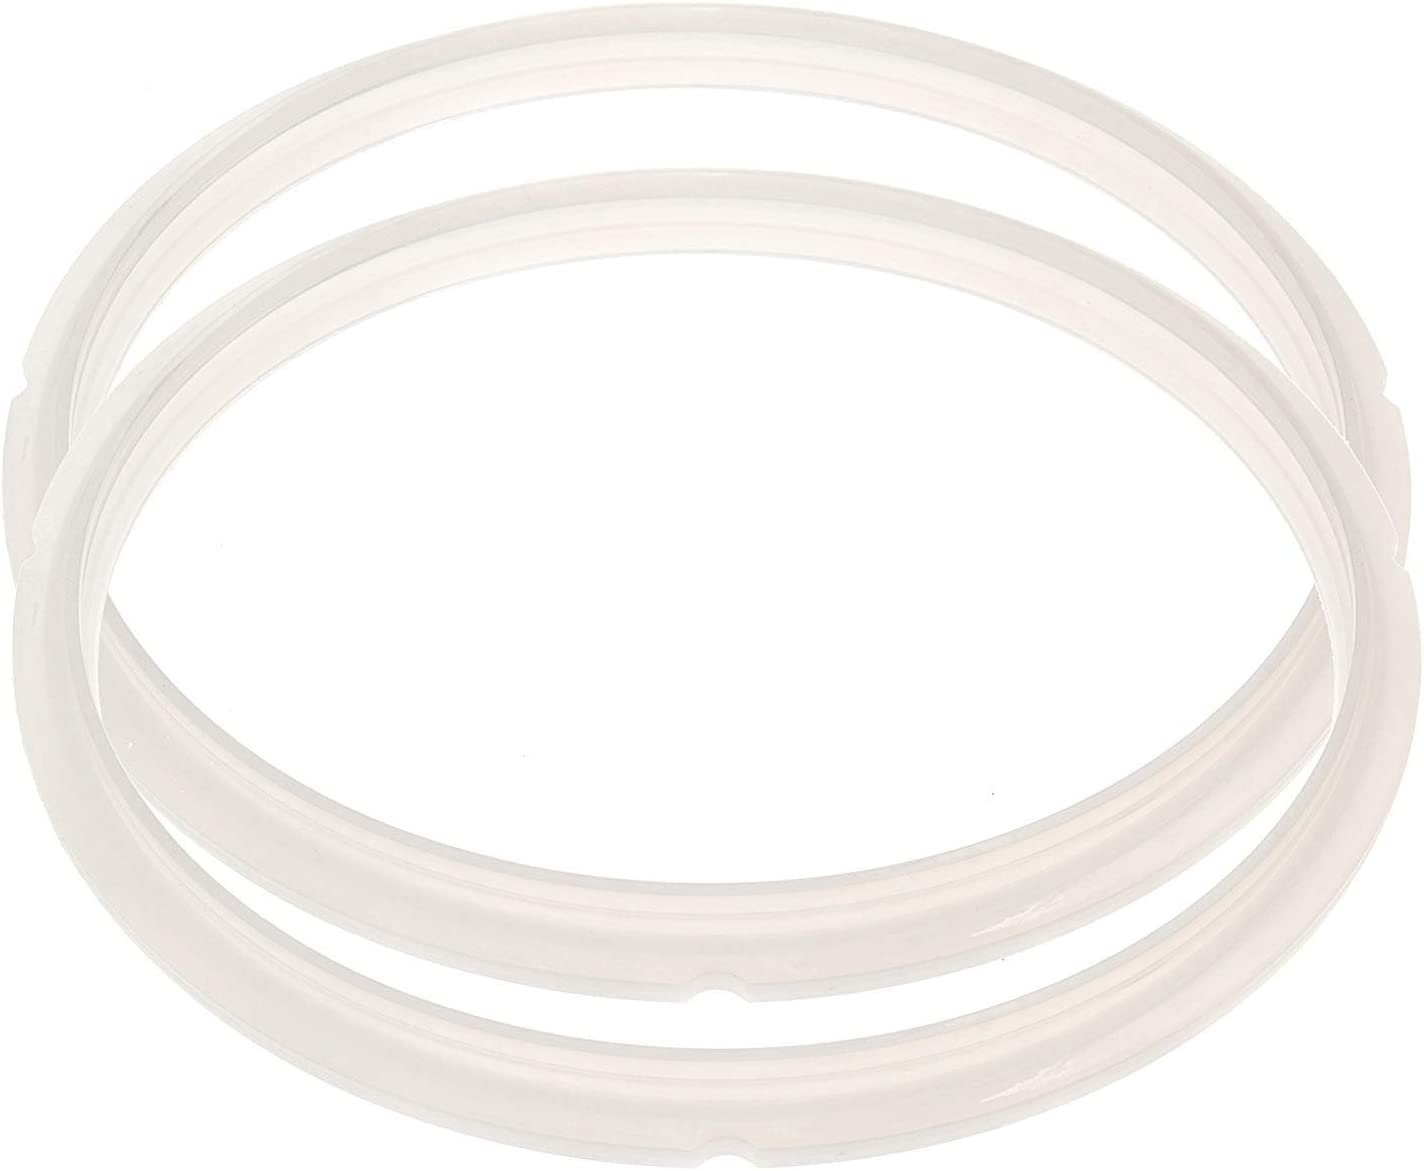 Silicone Sealing Ring, Riccioofy Power Pressure Cooker Rubber Gaskets for Many 5 Liter 6 Liter 5 Quart and 6 Quart Models, Set of 2 White